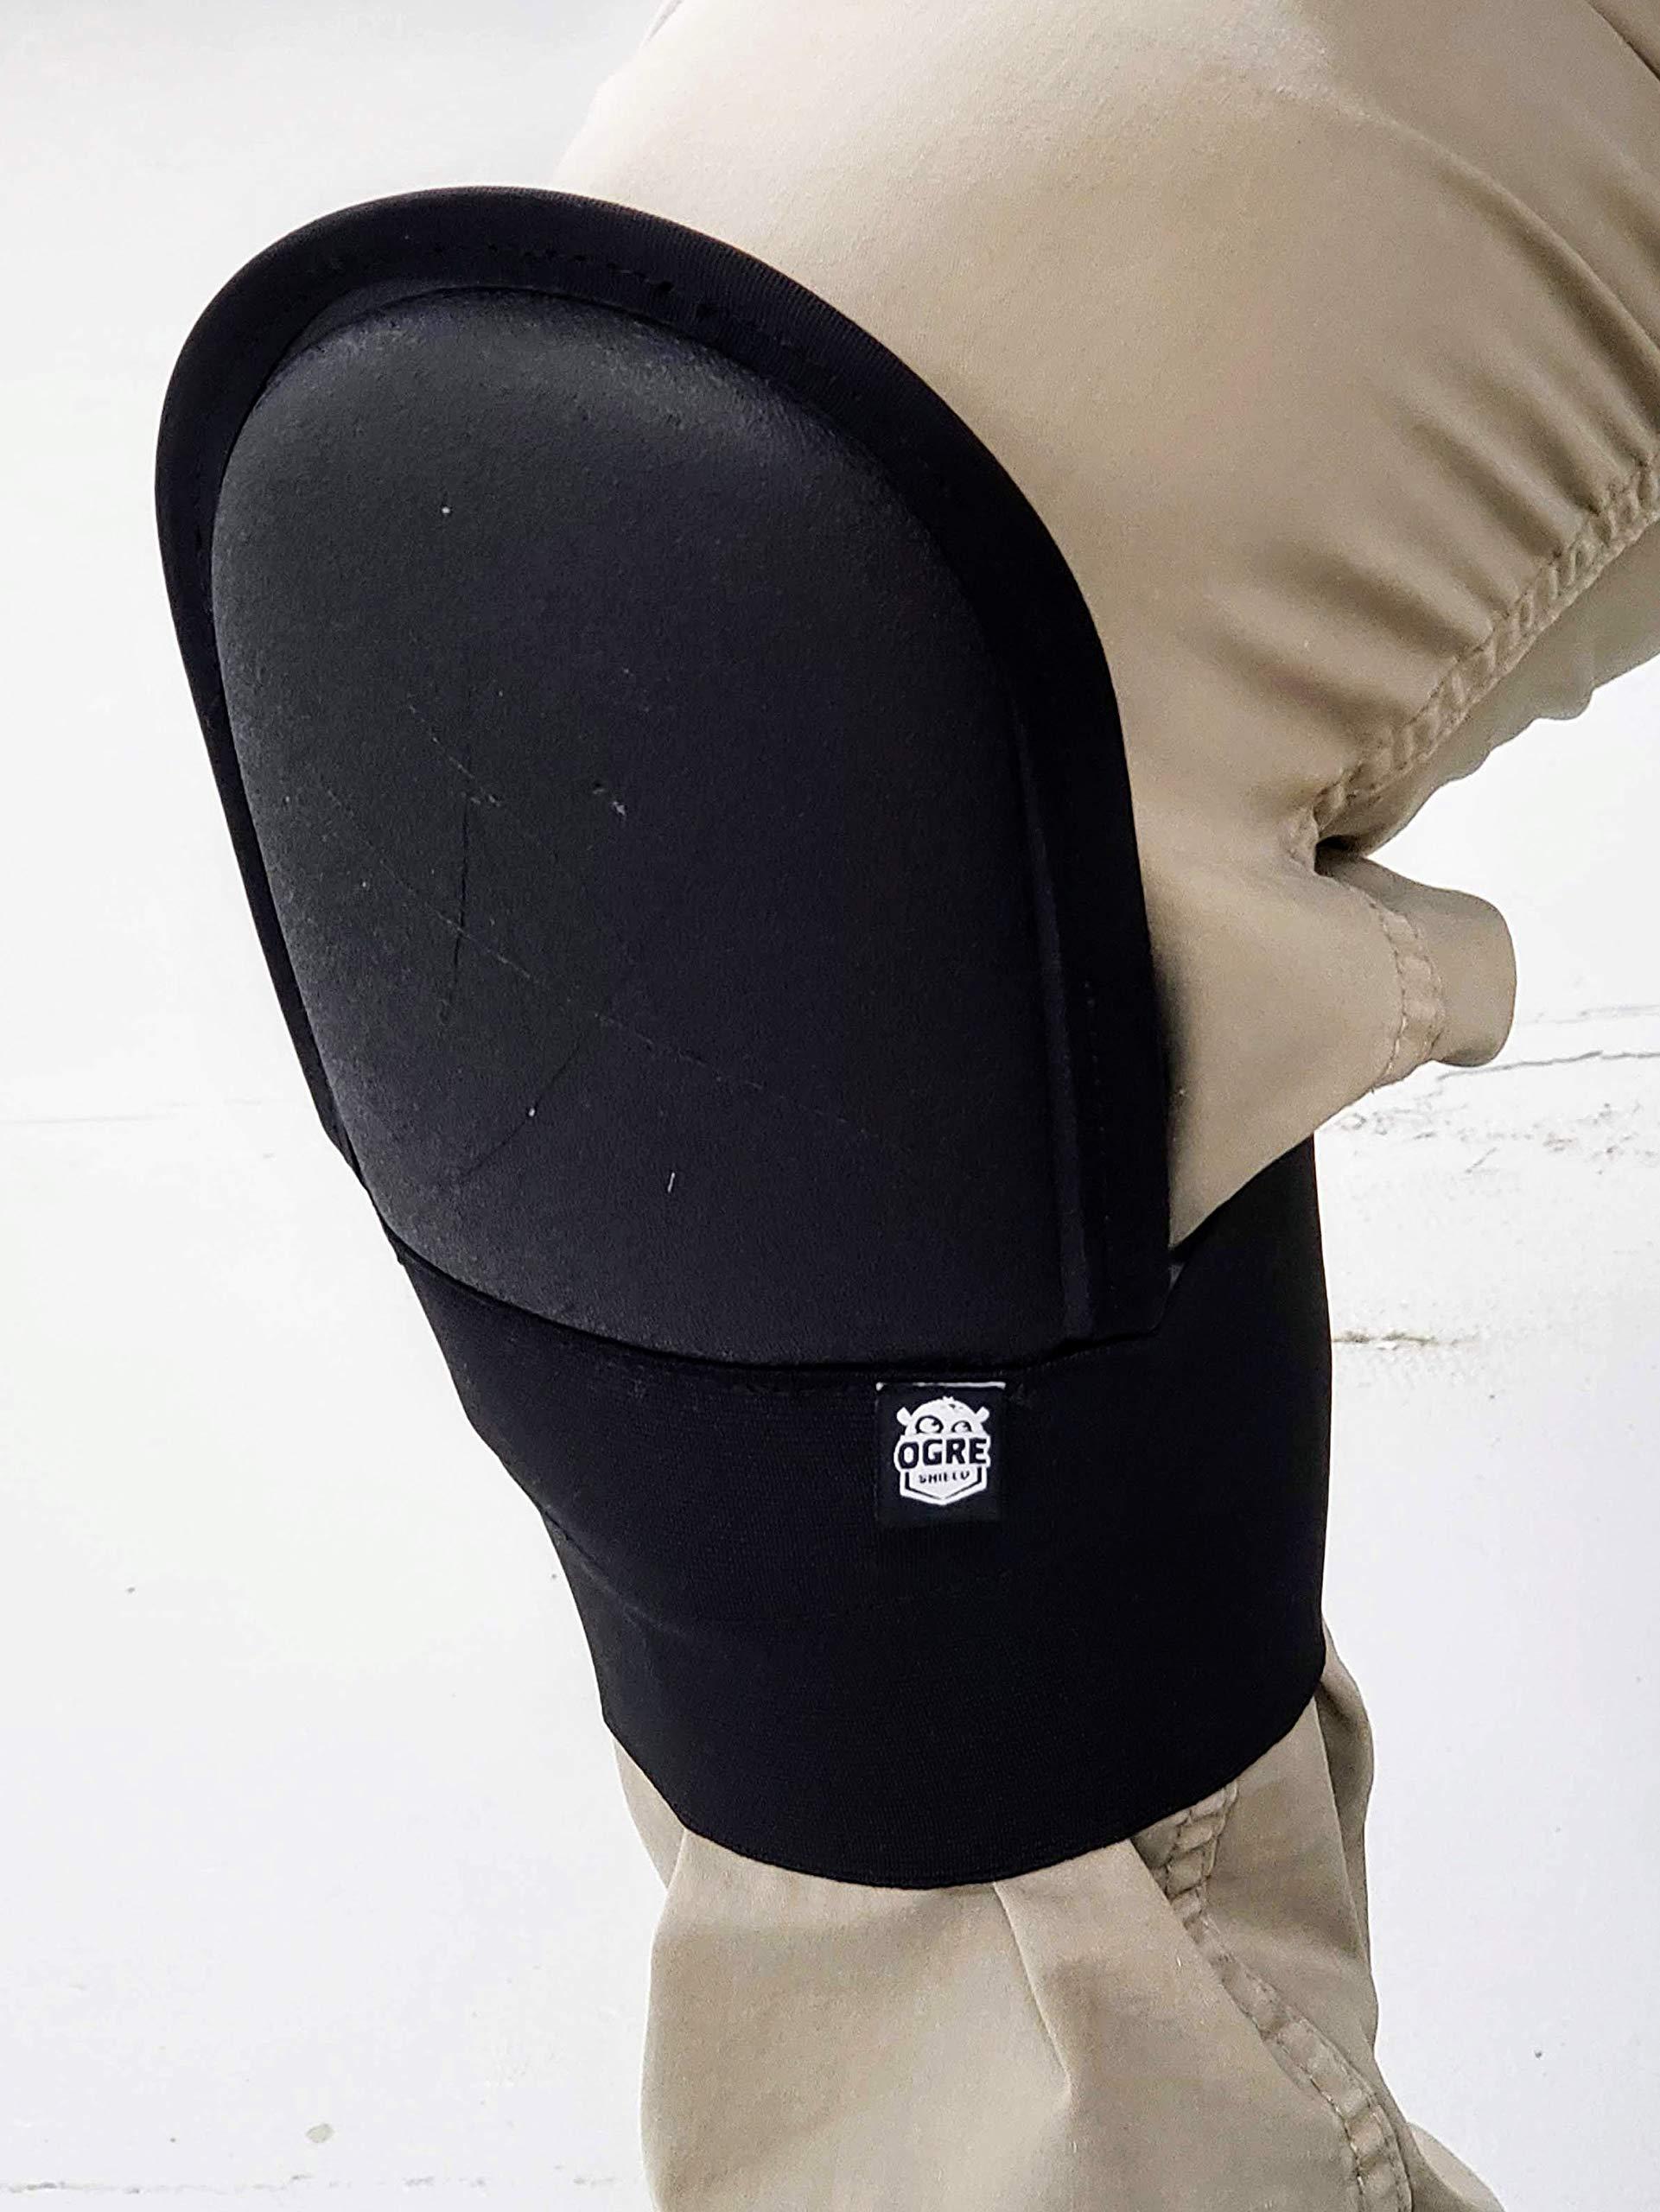 Ogre Shield Knee Pads - Hard Shell - The behind the calf knee pads! by Ogre Shield